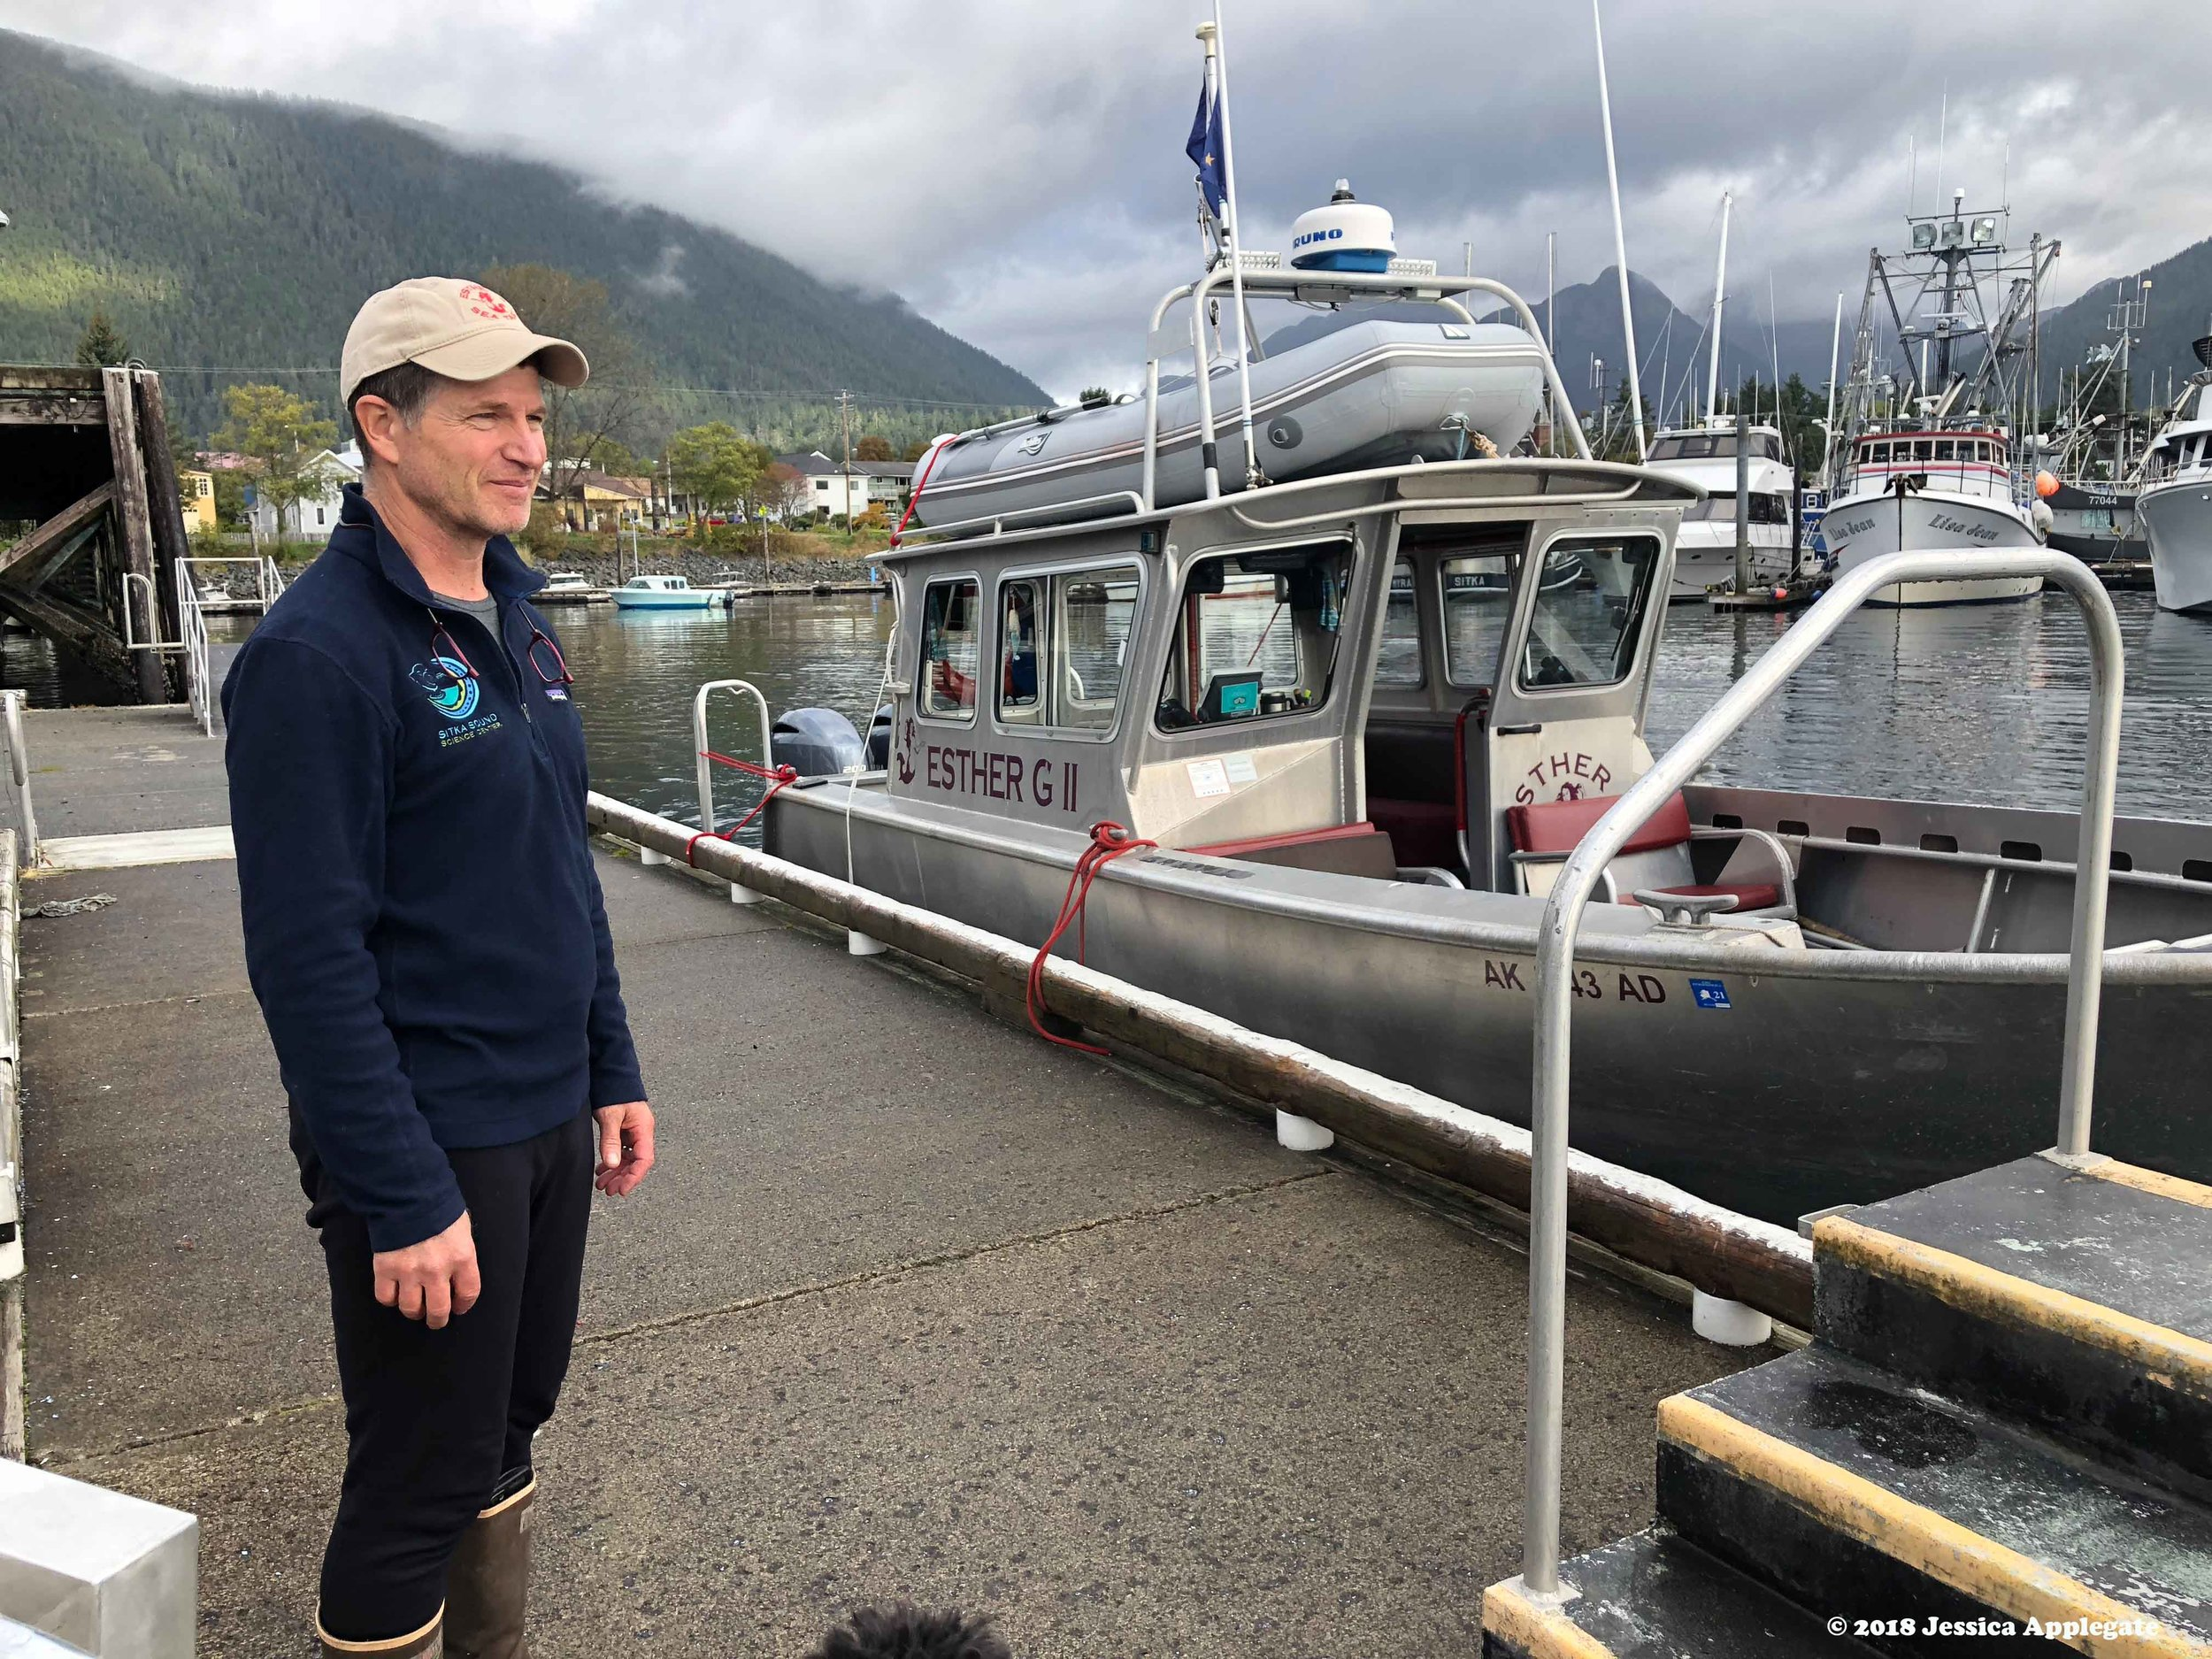 Davey Lubin, owner of Esther G Tours and Taxi in Sitka says his business asks for no taxpayer subsidies, unlike Southeast Alaska's timber industry.